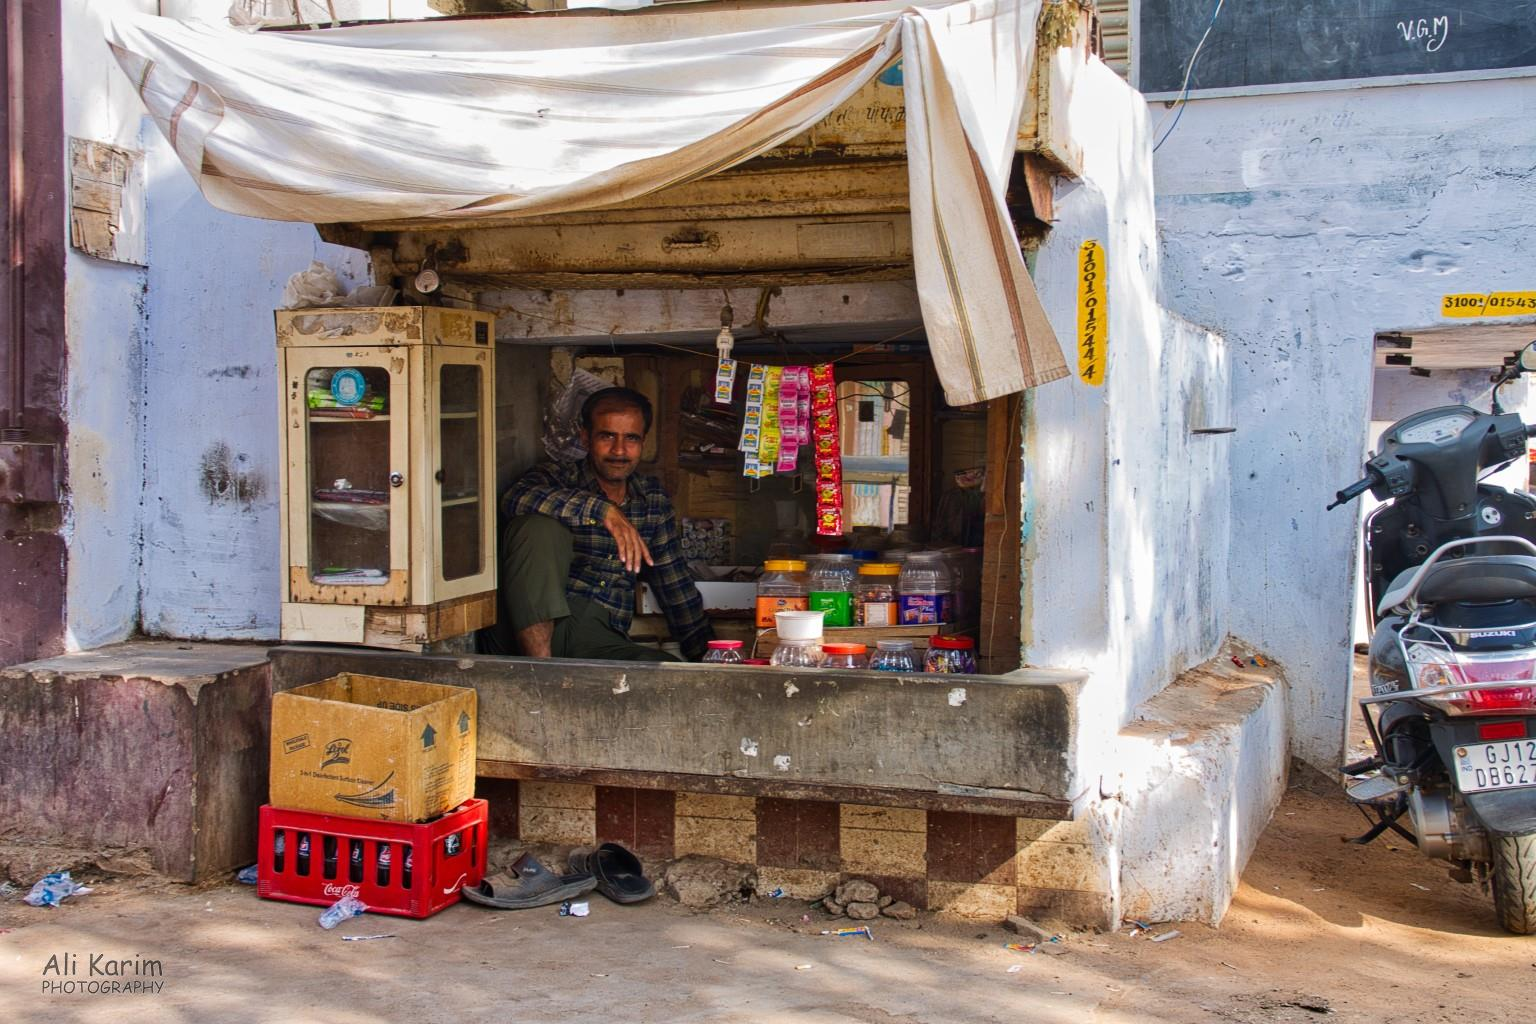 Bhuj, Kutch, Gujarat Enterprising village shopkeeper